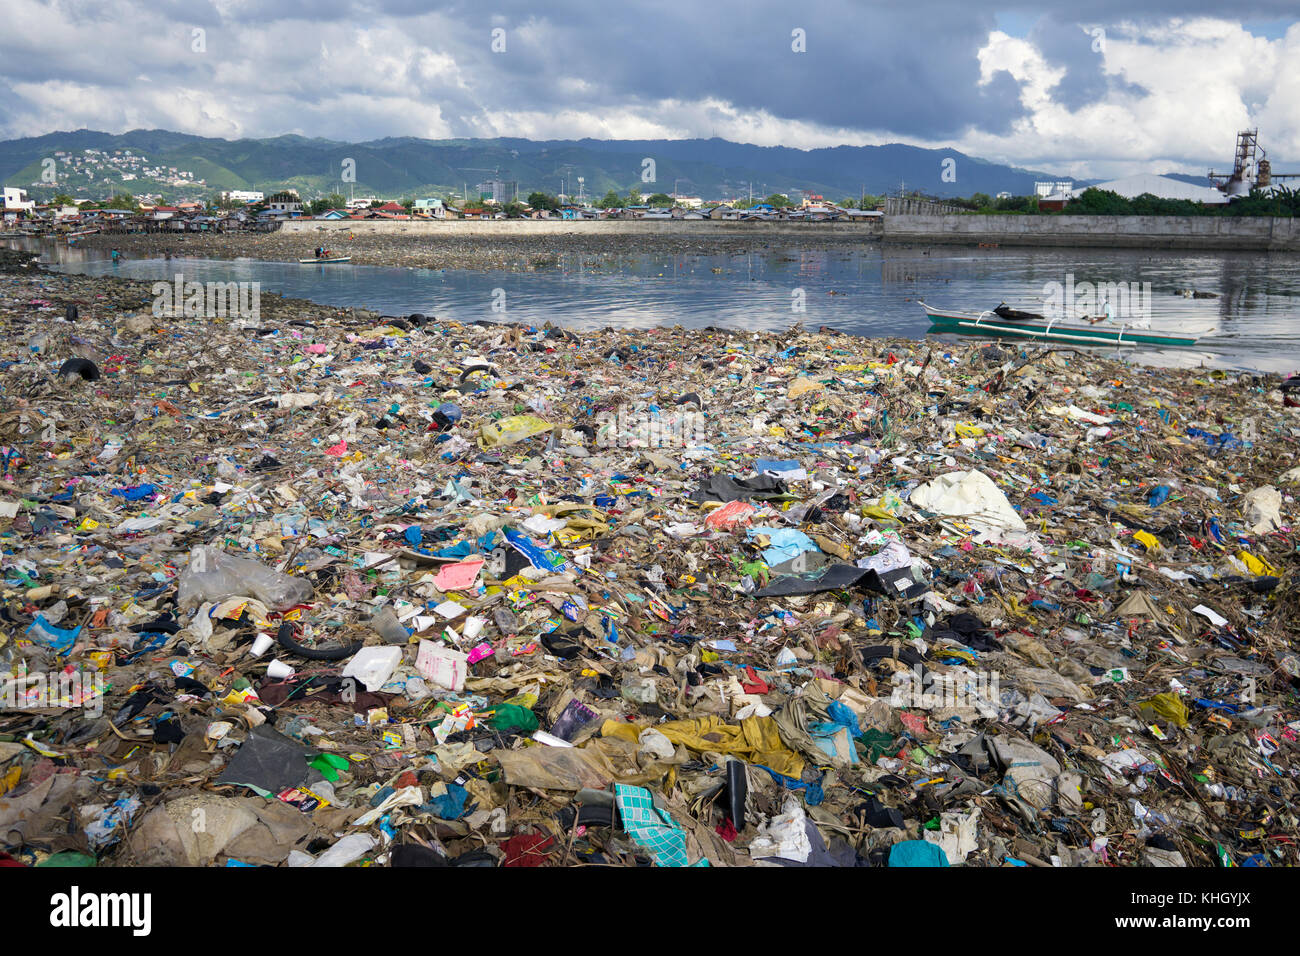 Cebu City, Philippines. 19th Nov, 2017. A huge pile of garbage formed at the exit of a channel leading directly - Stock Image